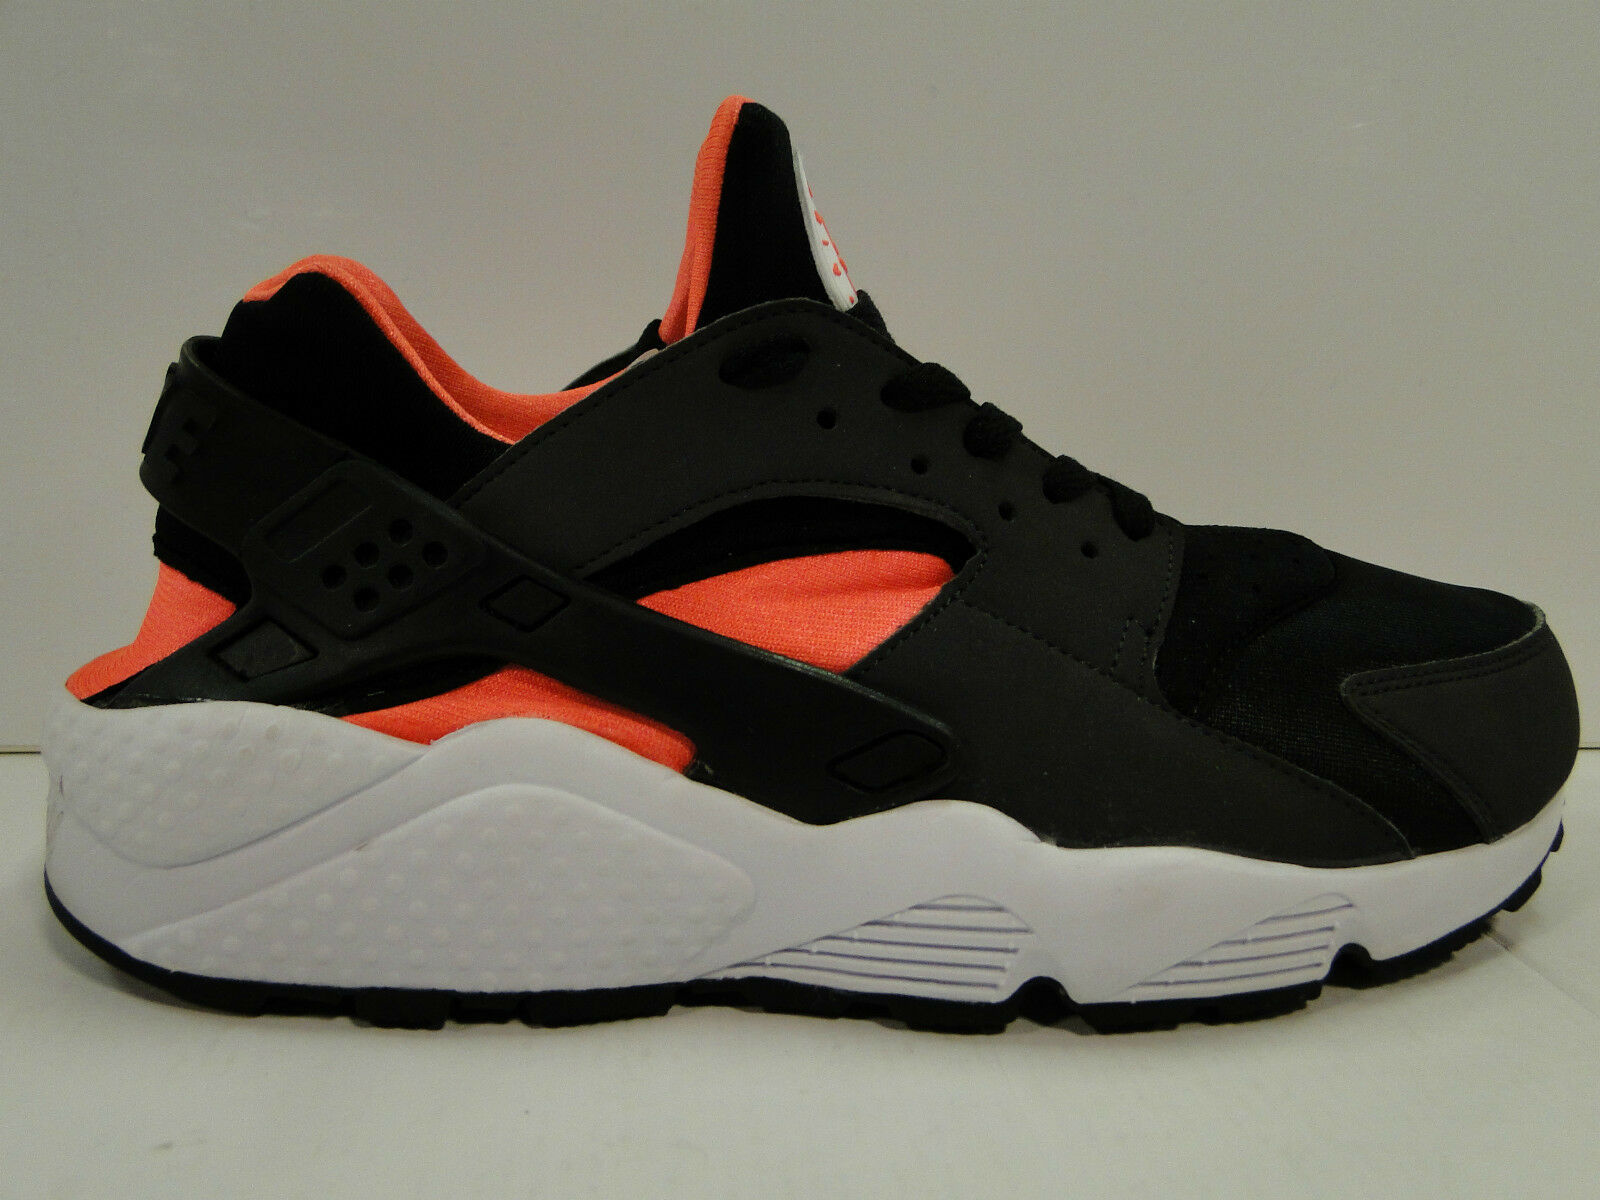 NIKE AIR HUARACHE Blk Total Orange Anthracite homme fonctionnement Trainers  318429/081